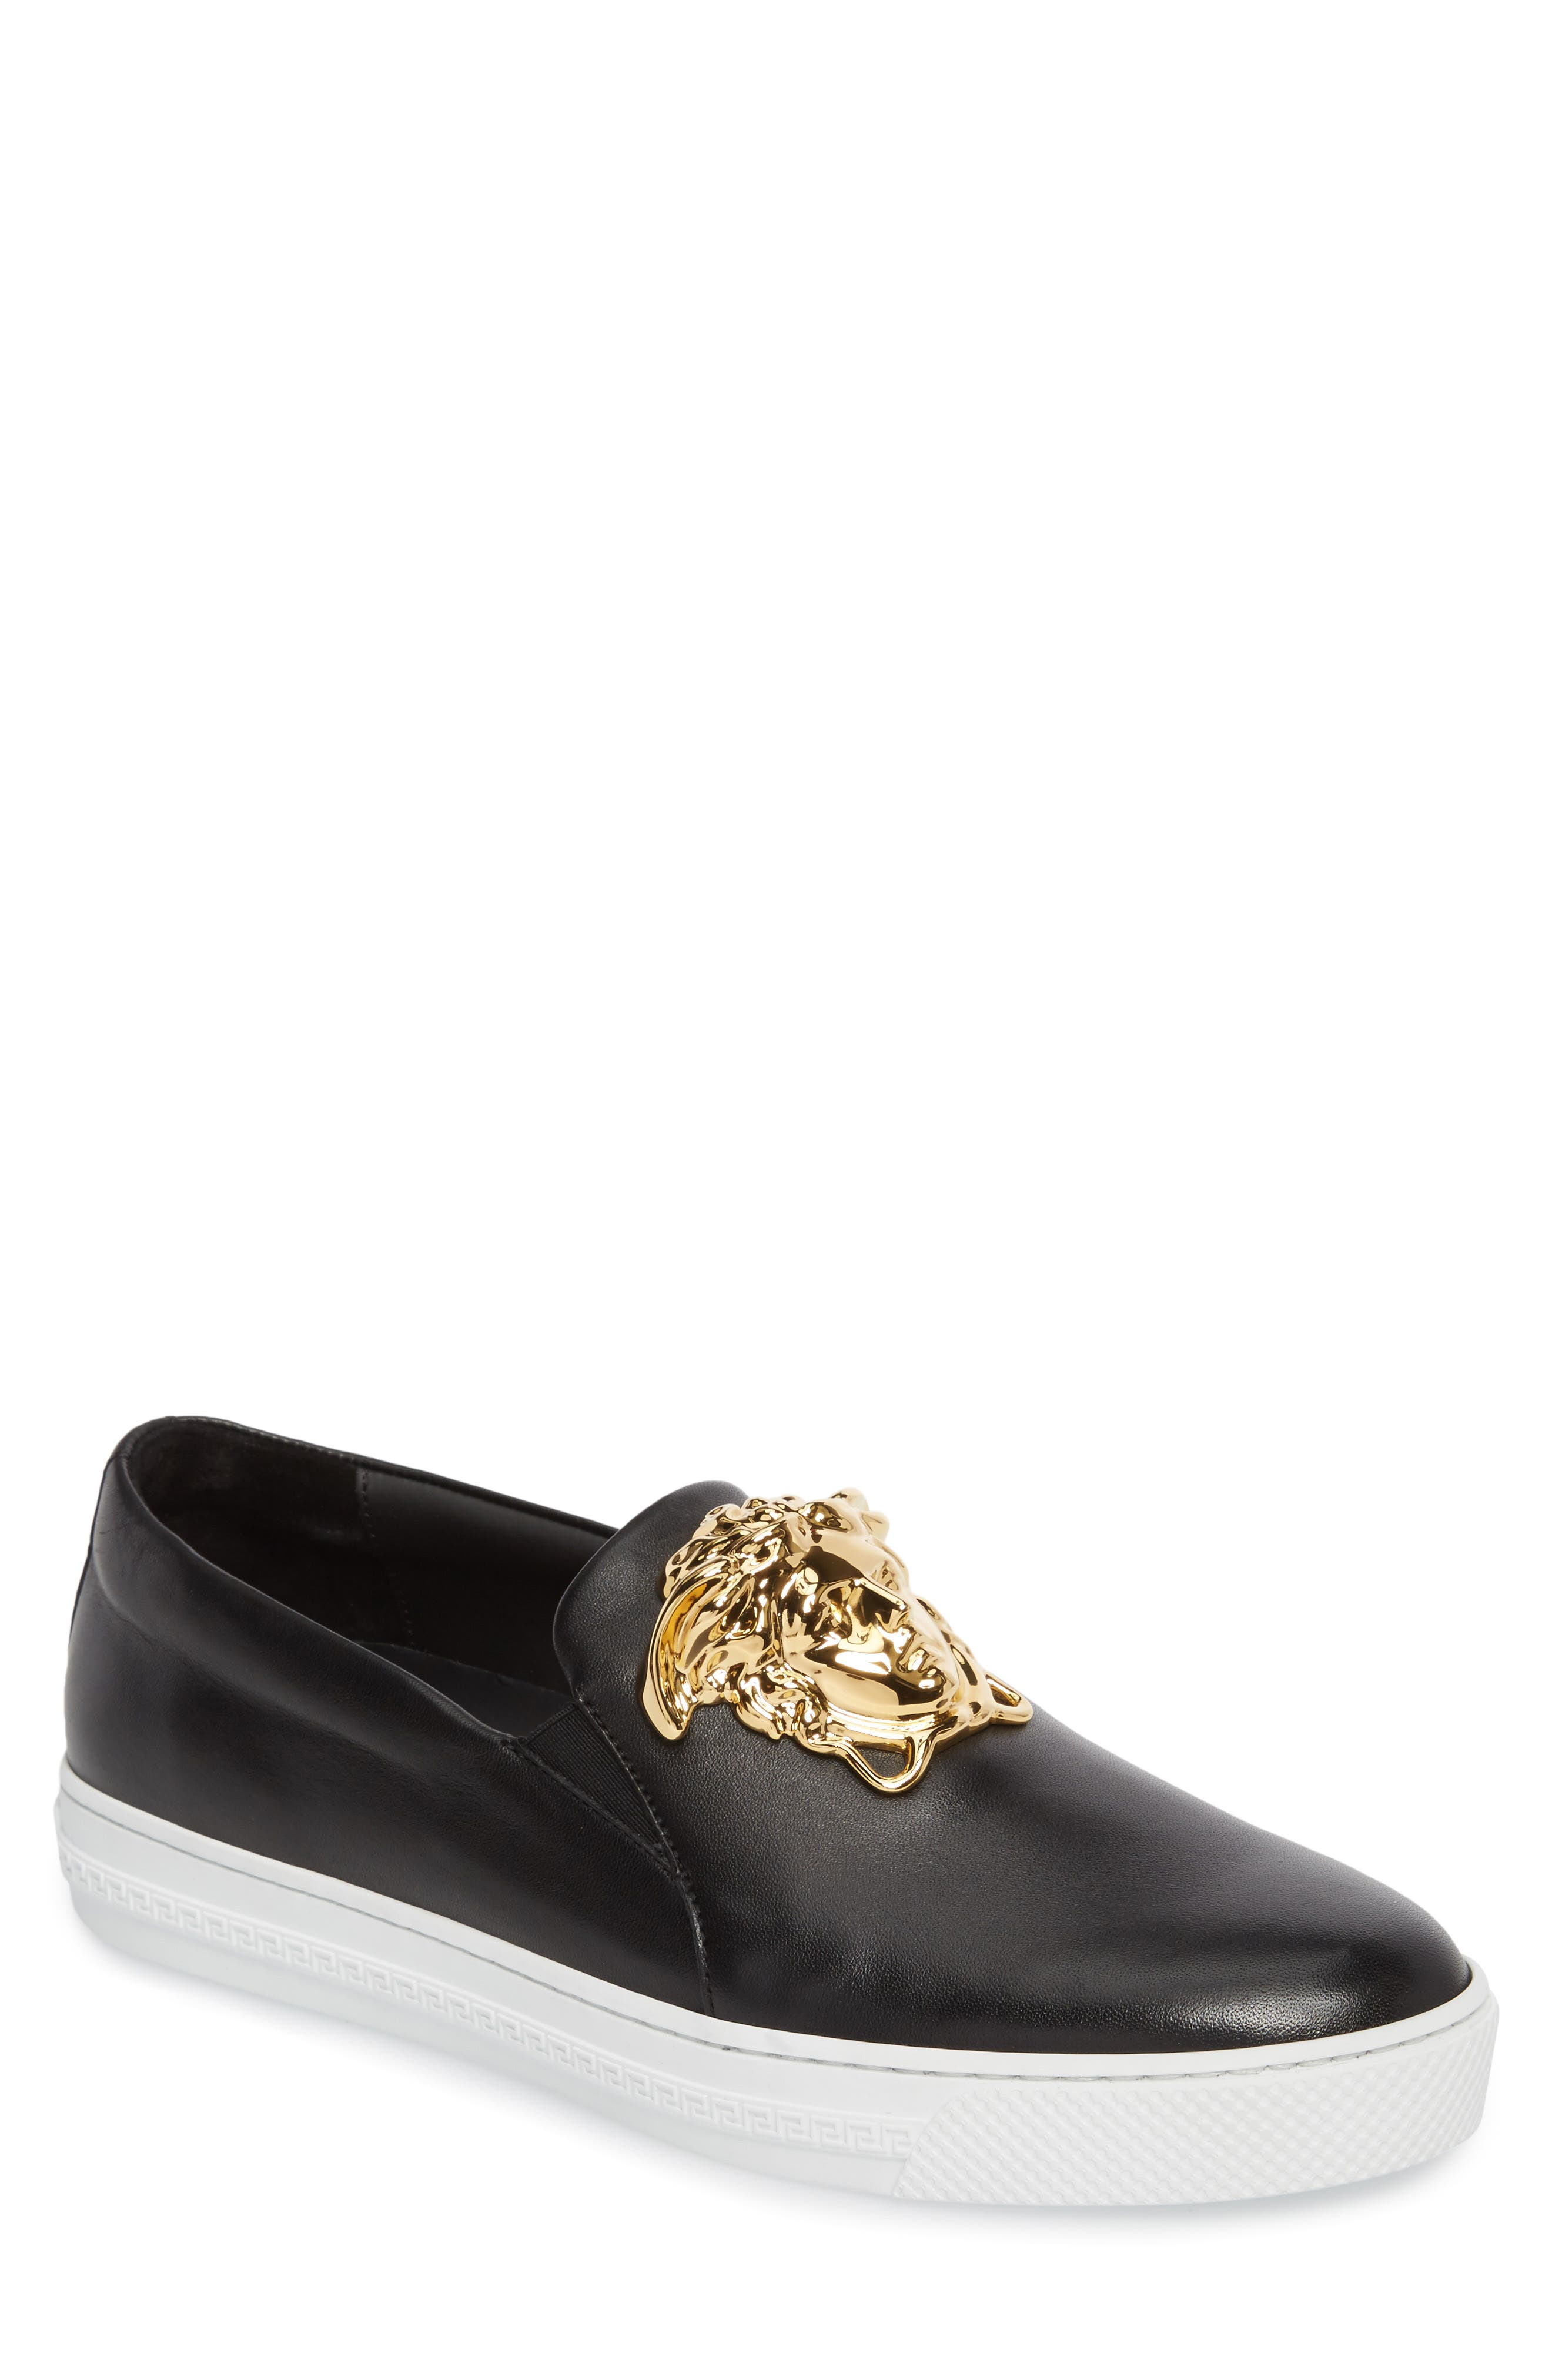 Main Image - Versace First Line Iconic Palazzo Slip-On (Men)